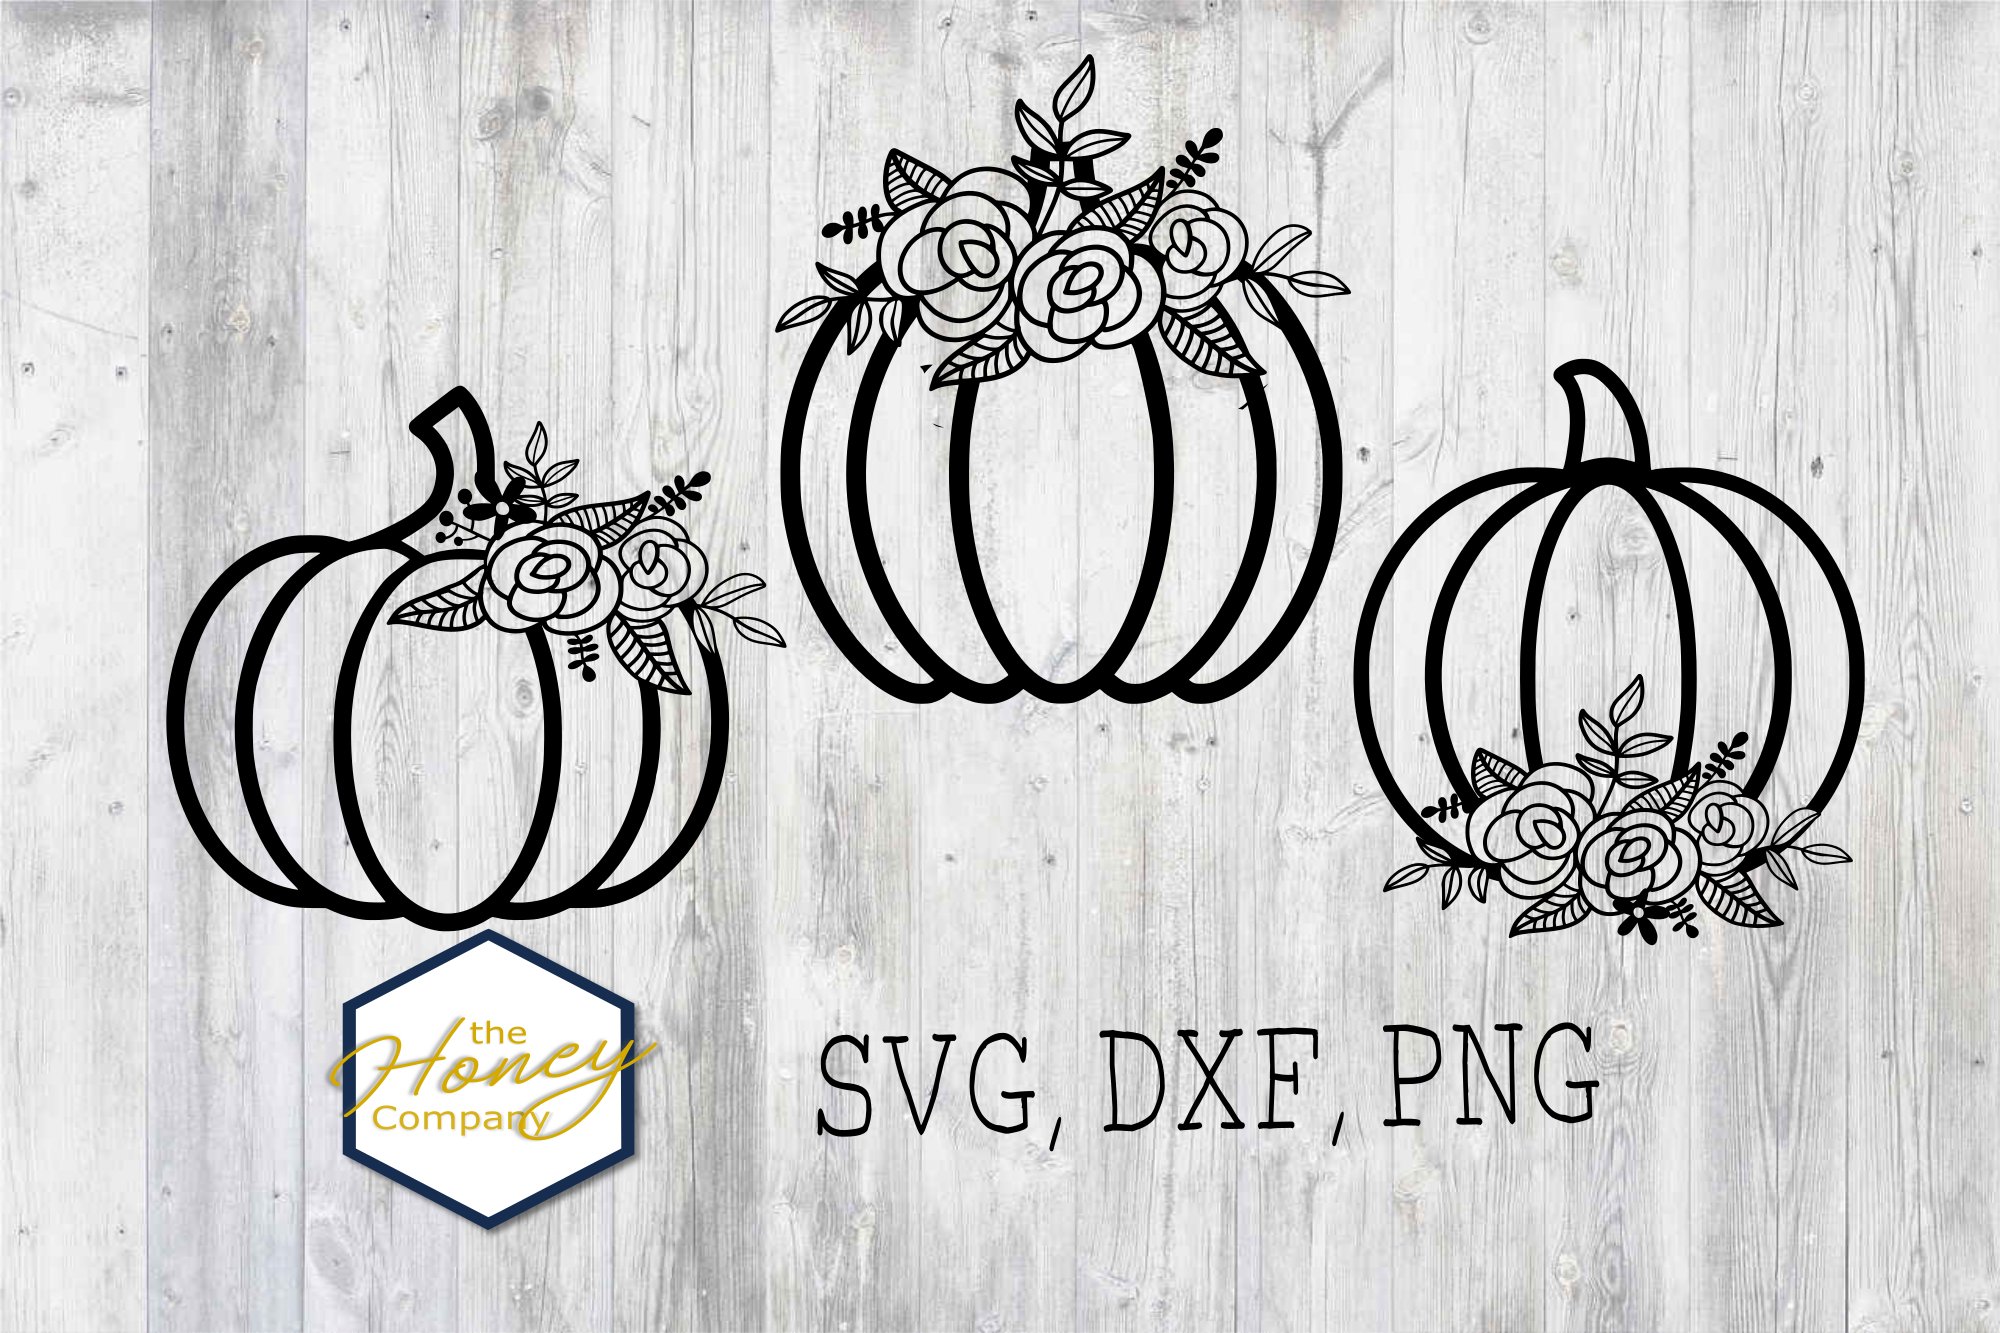 Graphic Design Logo Drawing Free Svg Cut Files Create Your Diy Projects Using Your Cricut Explore Silhouette And More The Free Cut Files Include Svg Dxf Eps And Png Files